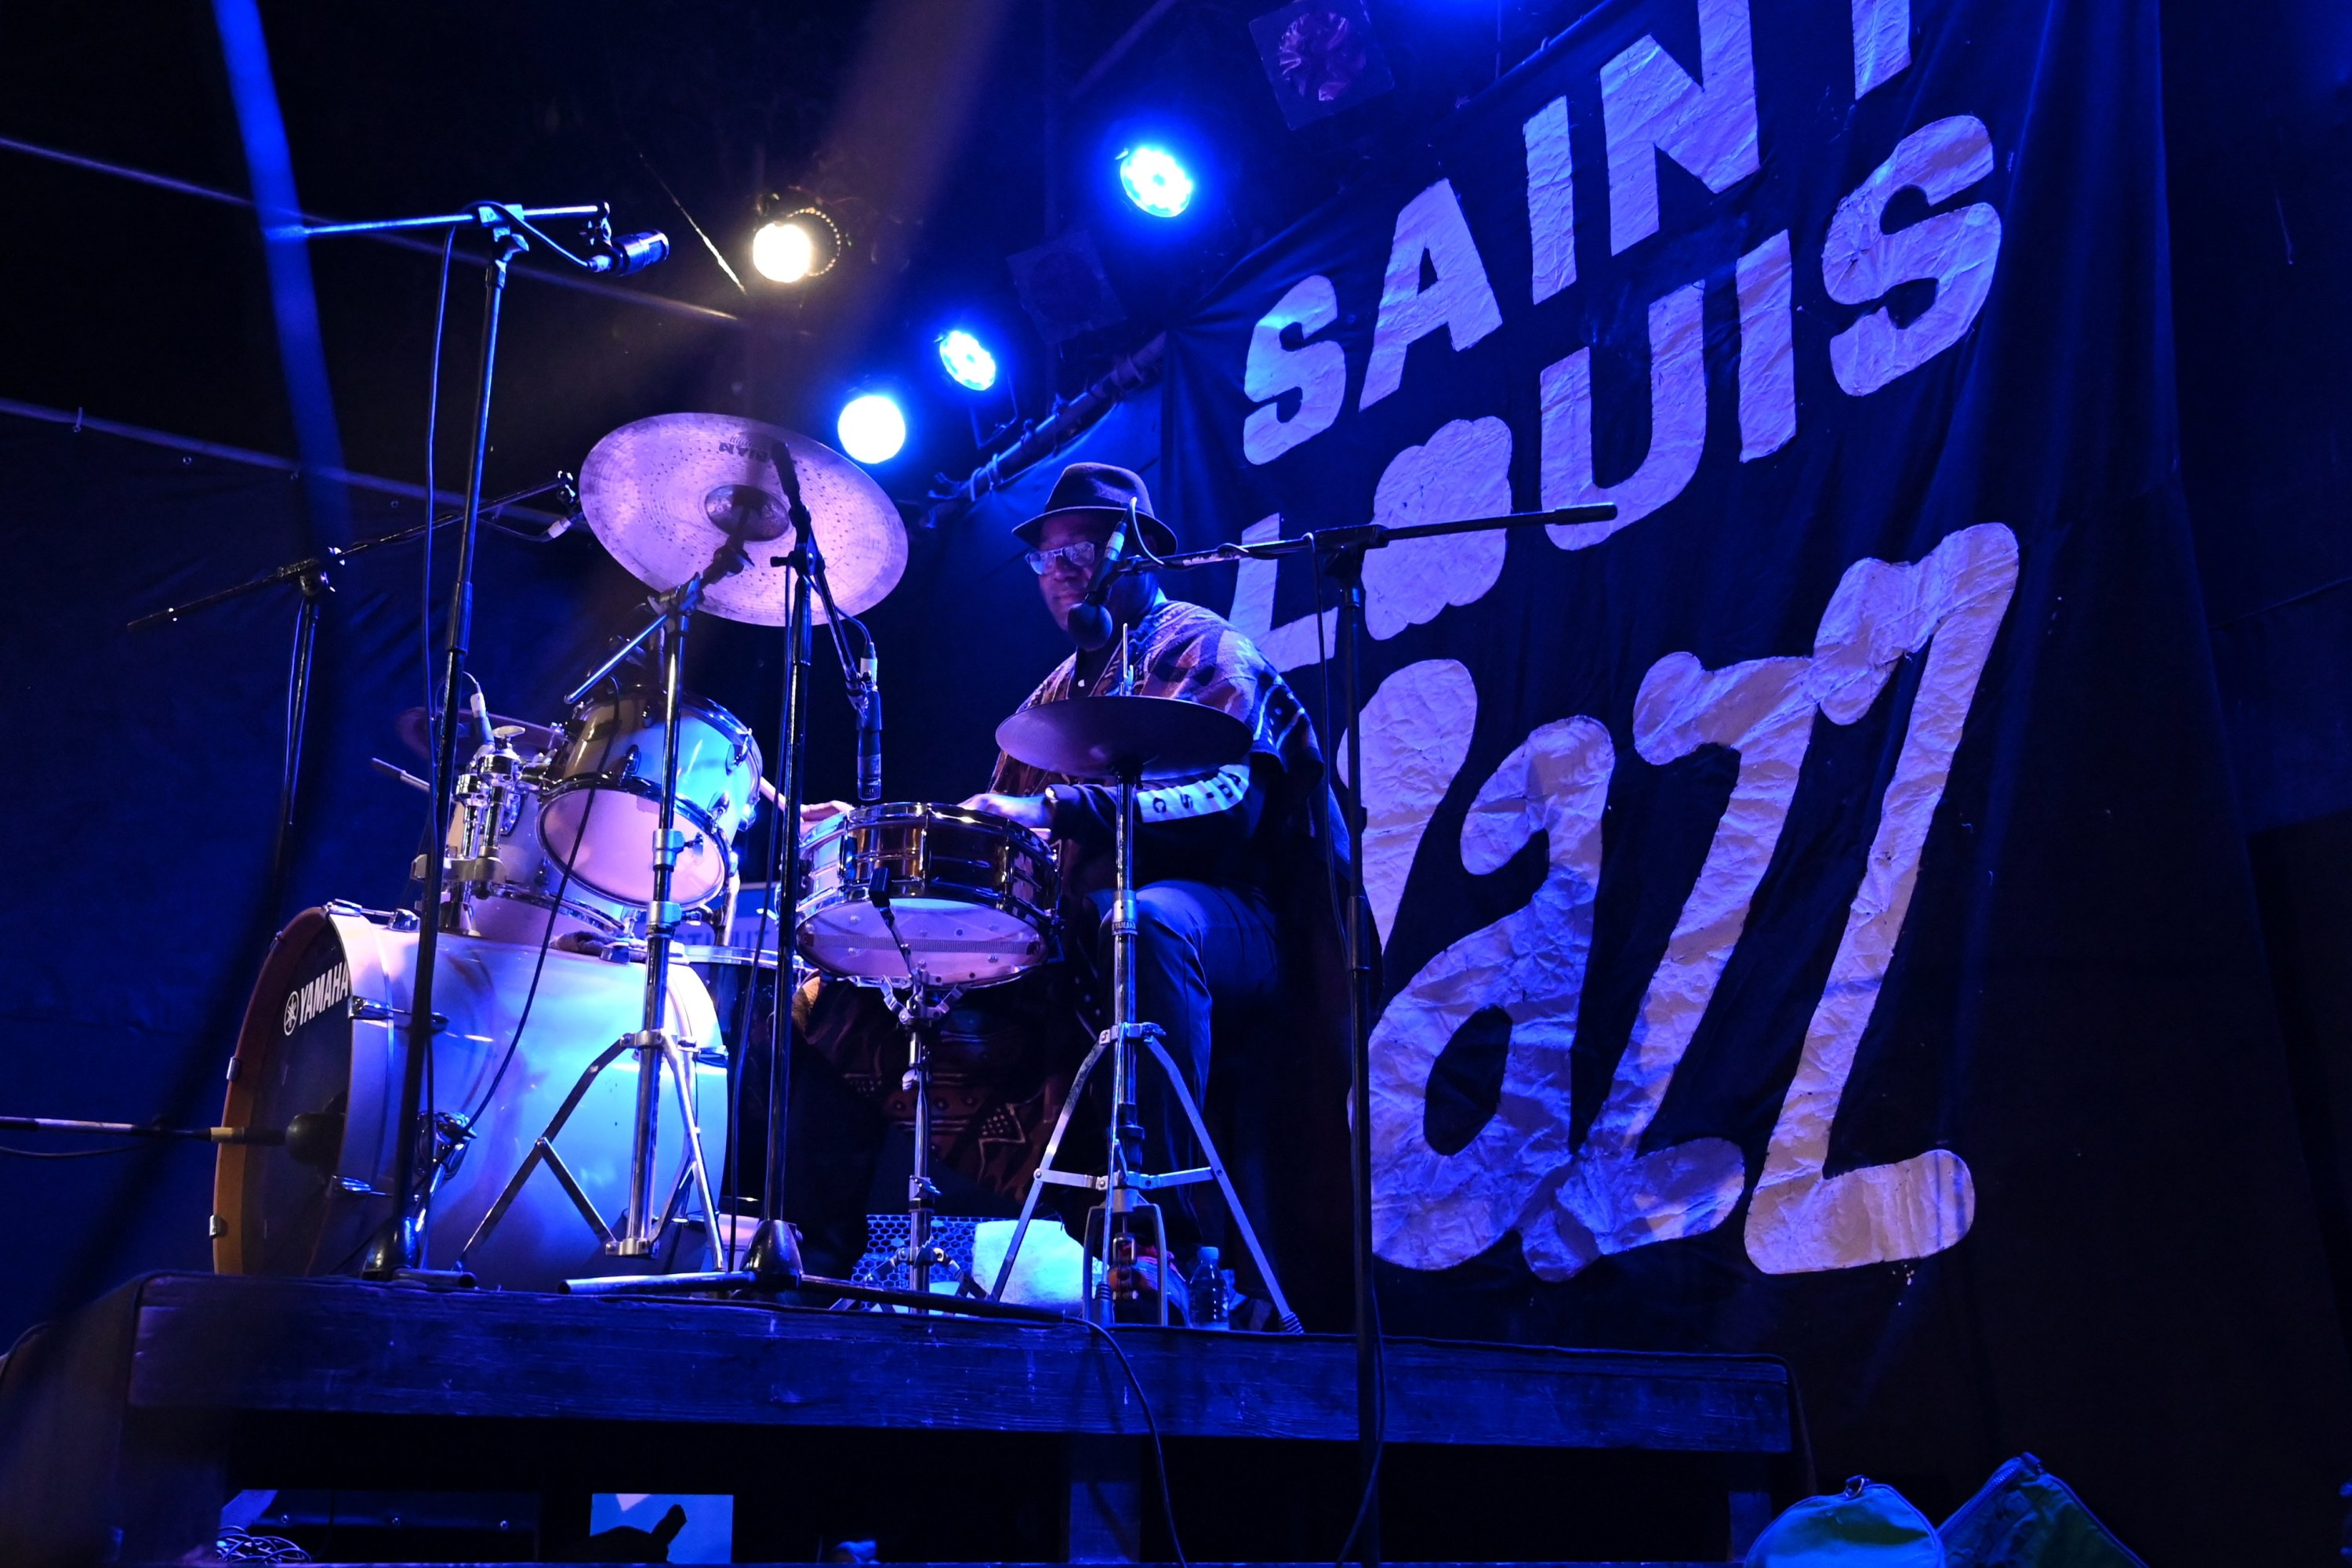 Drummer Jacques Eyuk performs on stage with his band JAMM at the Saint Louis Jazz Festival in Saint Louis, Senegal, June 18, 2021 (Reuters Photo)